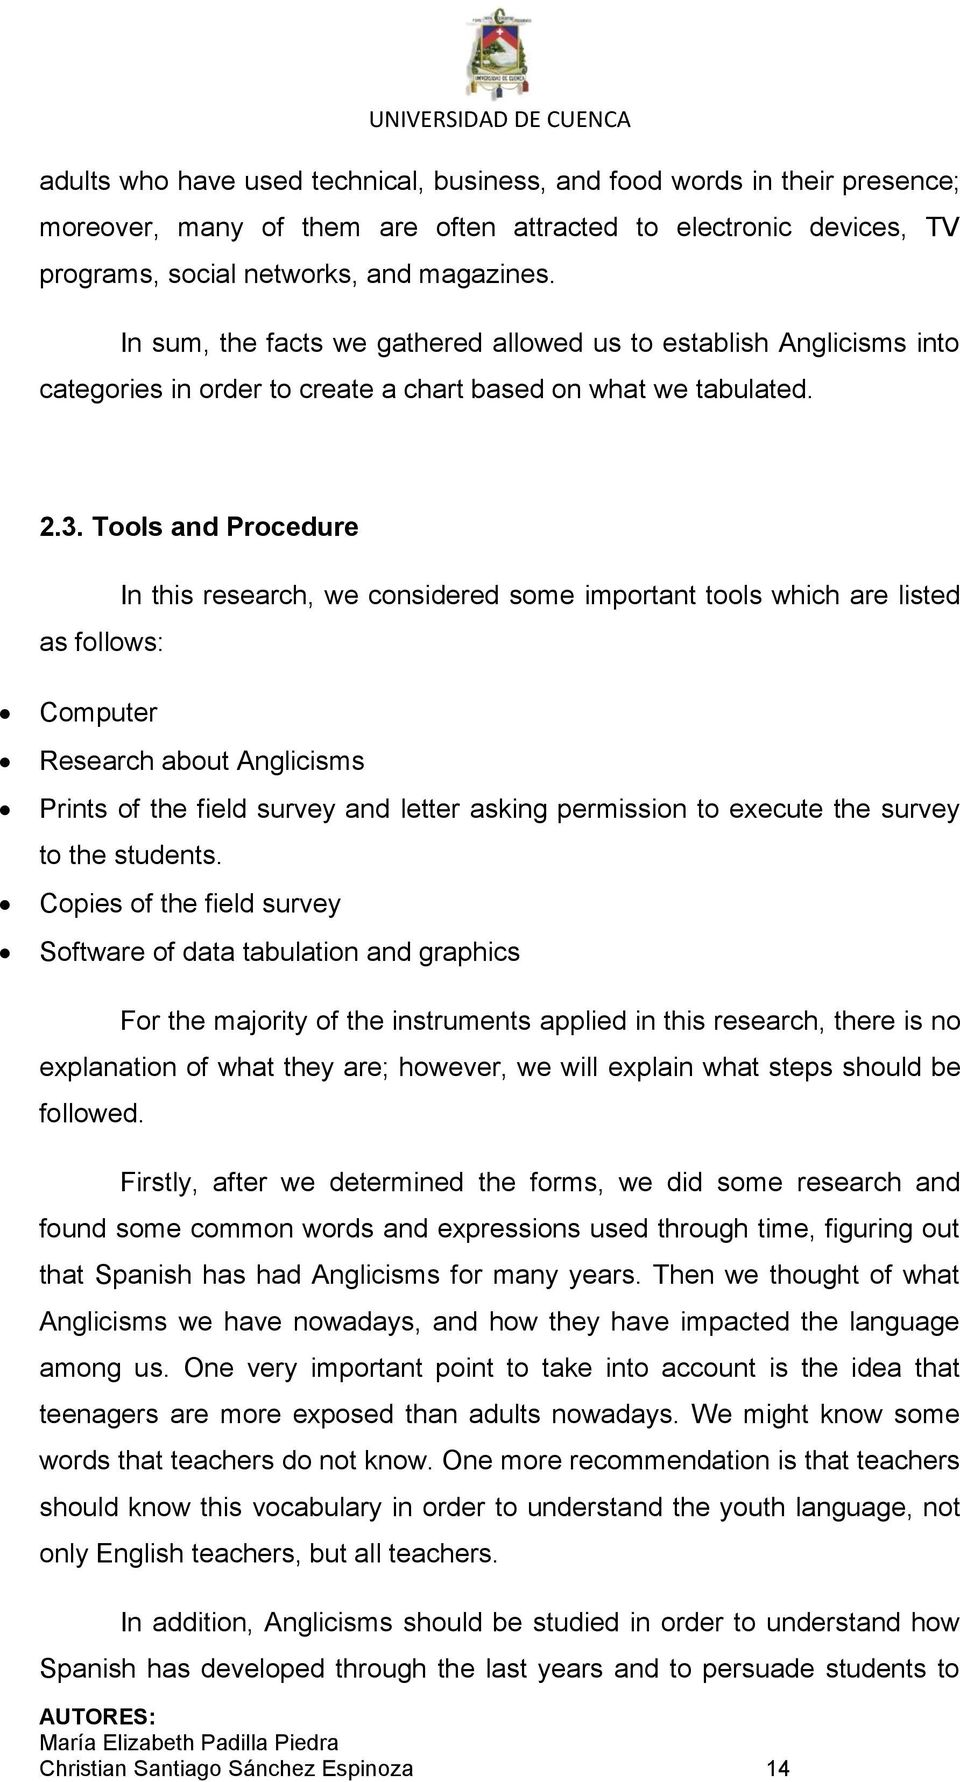 Tools and Procedure as follows: In this research, we considered some important tools which are listed Computer Research about Anglicisms Prints of the field survey and letter asking permission to